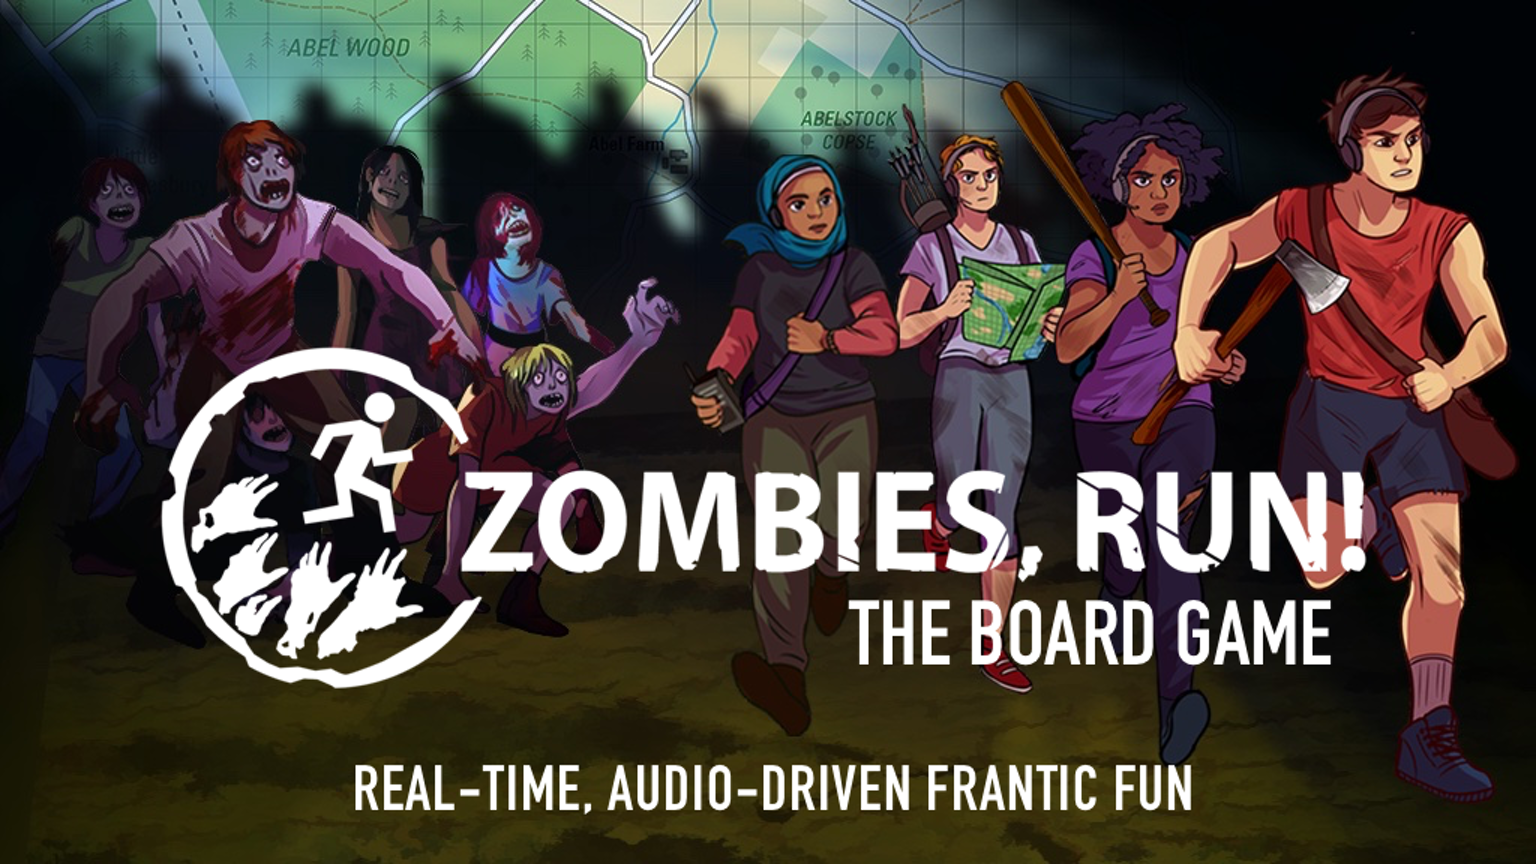 Escape zombies. Find allies. Save humanity. Prepare for frantic,  real-time, audio-driven fun for 2-4 players!